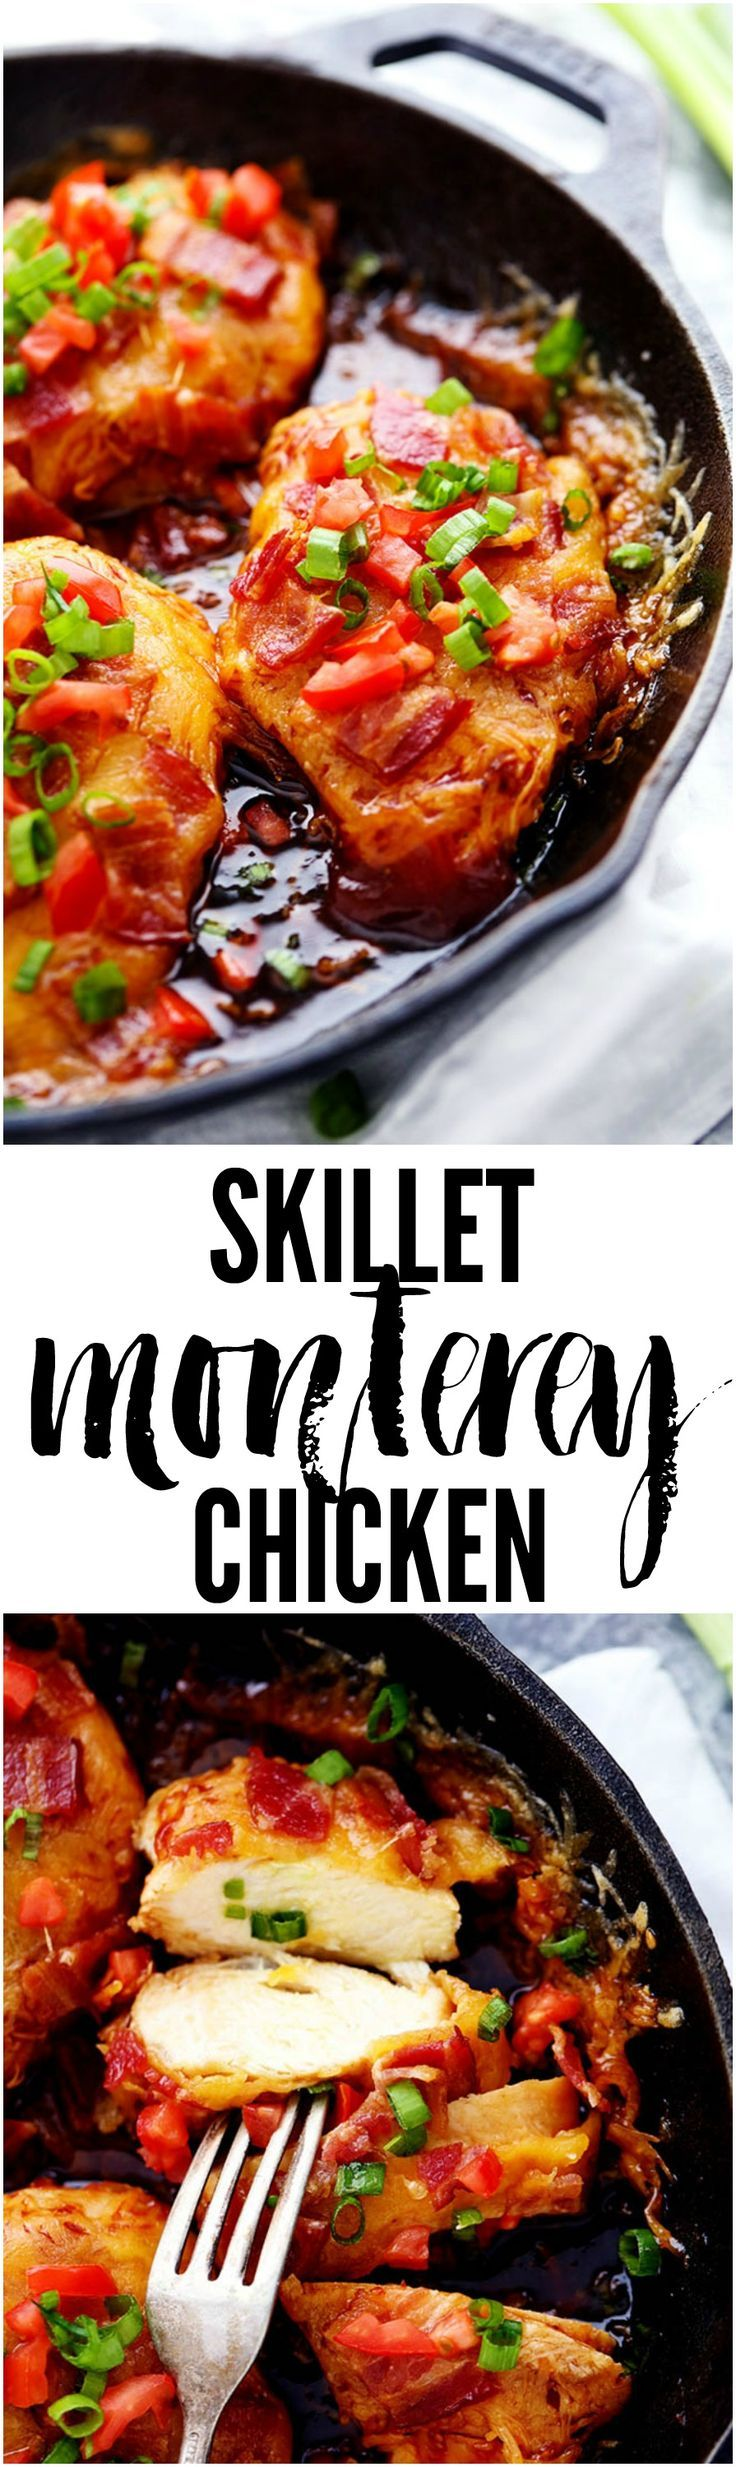 Skillet Monterey Chicken is a 30 minute meal that the entire family will fall in love with! Smothered in BBQ sauce, cheddar cheese and bacon this meal is full of flavor!